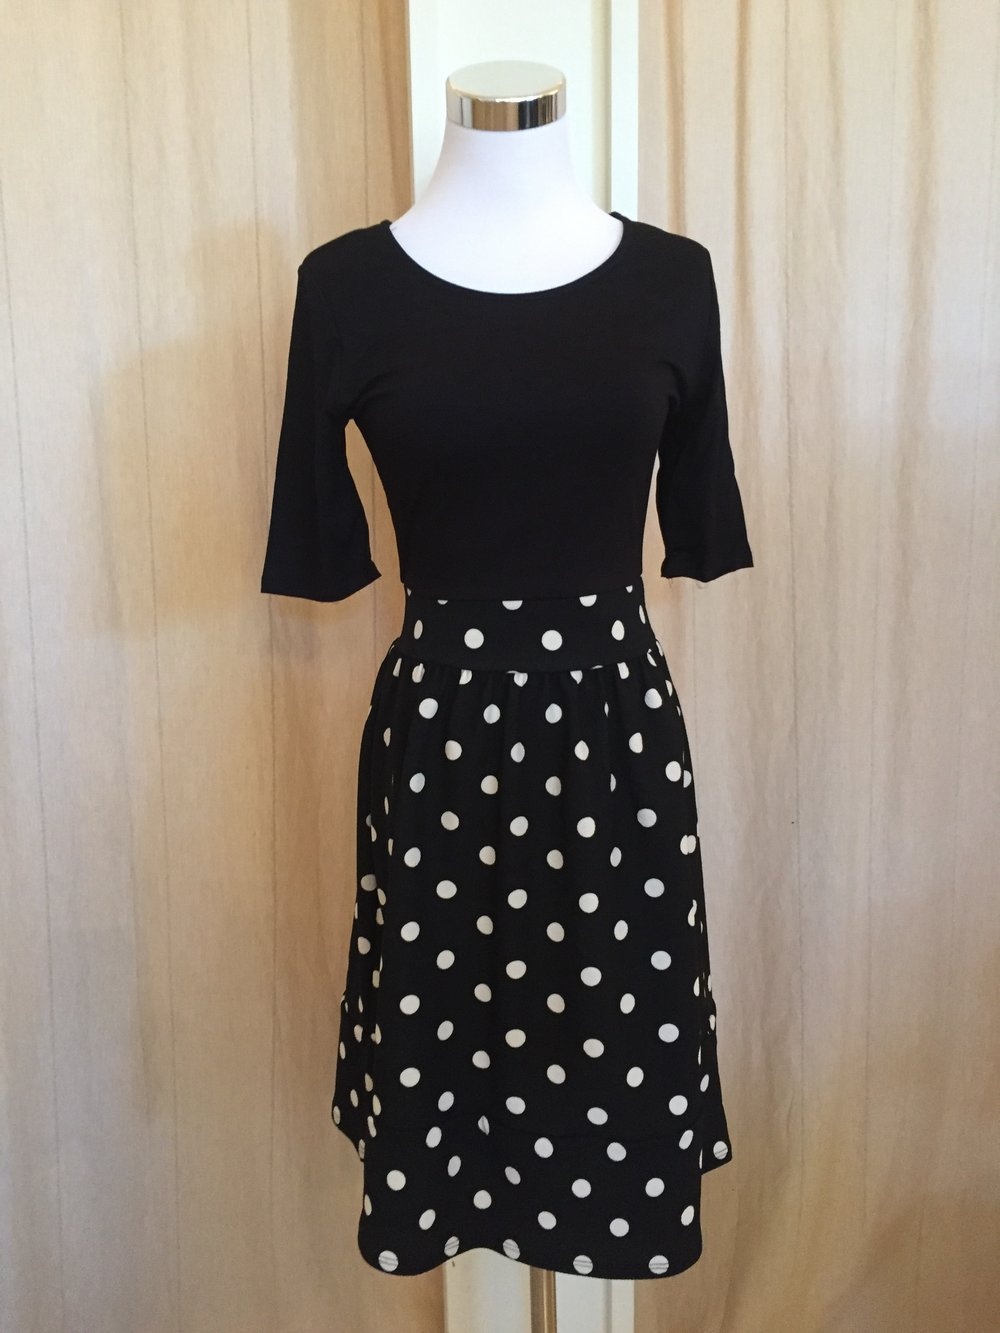 Gilli large dot dress $45